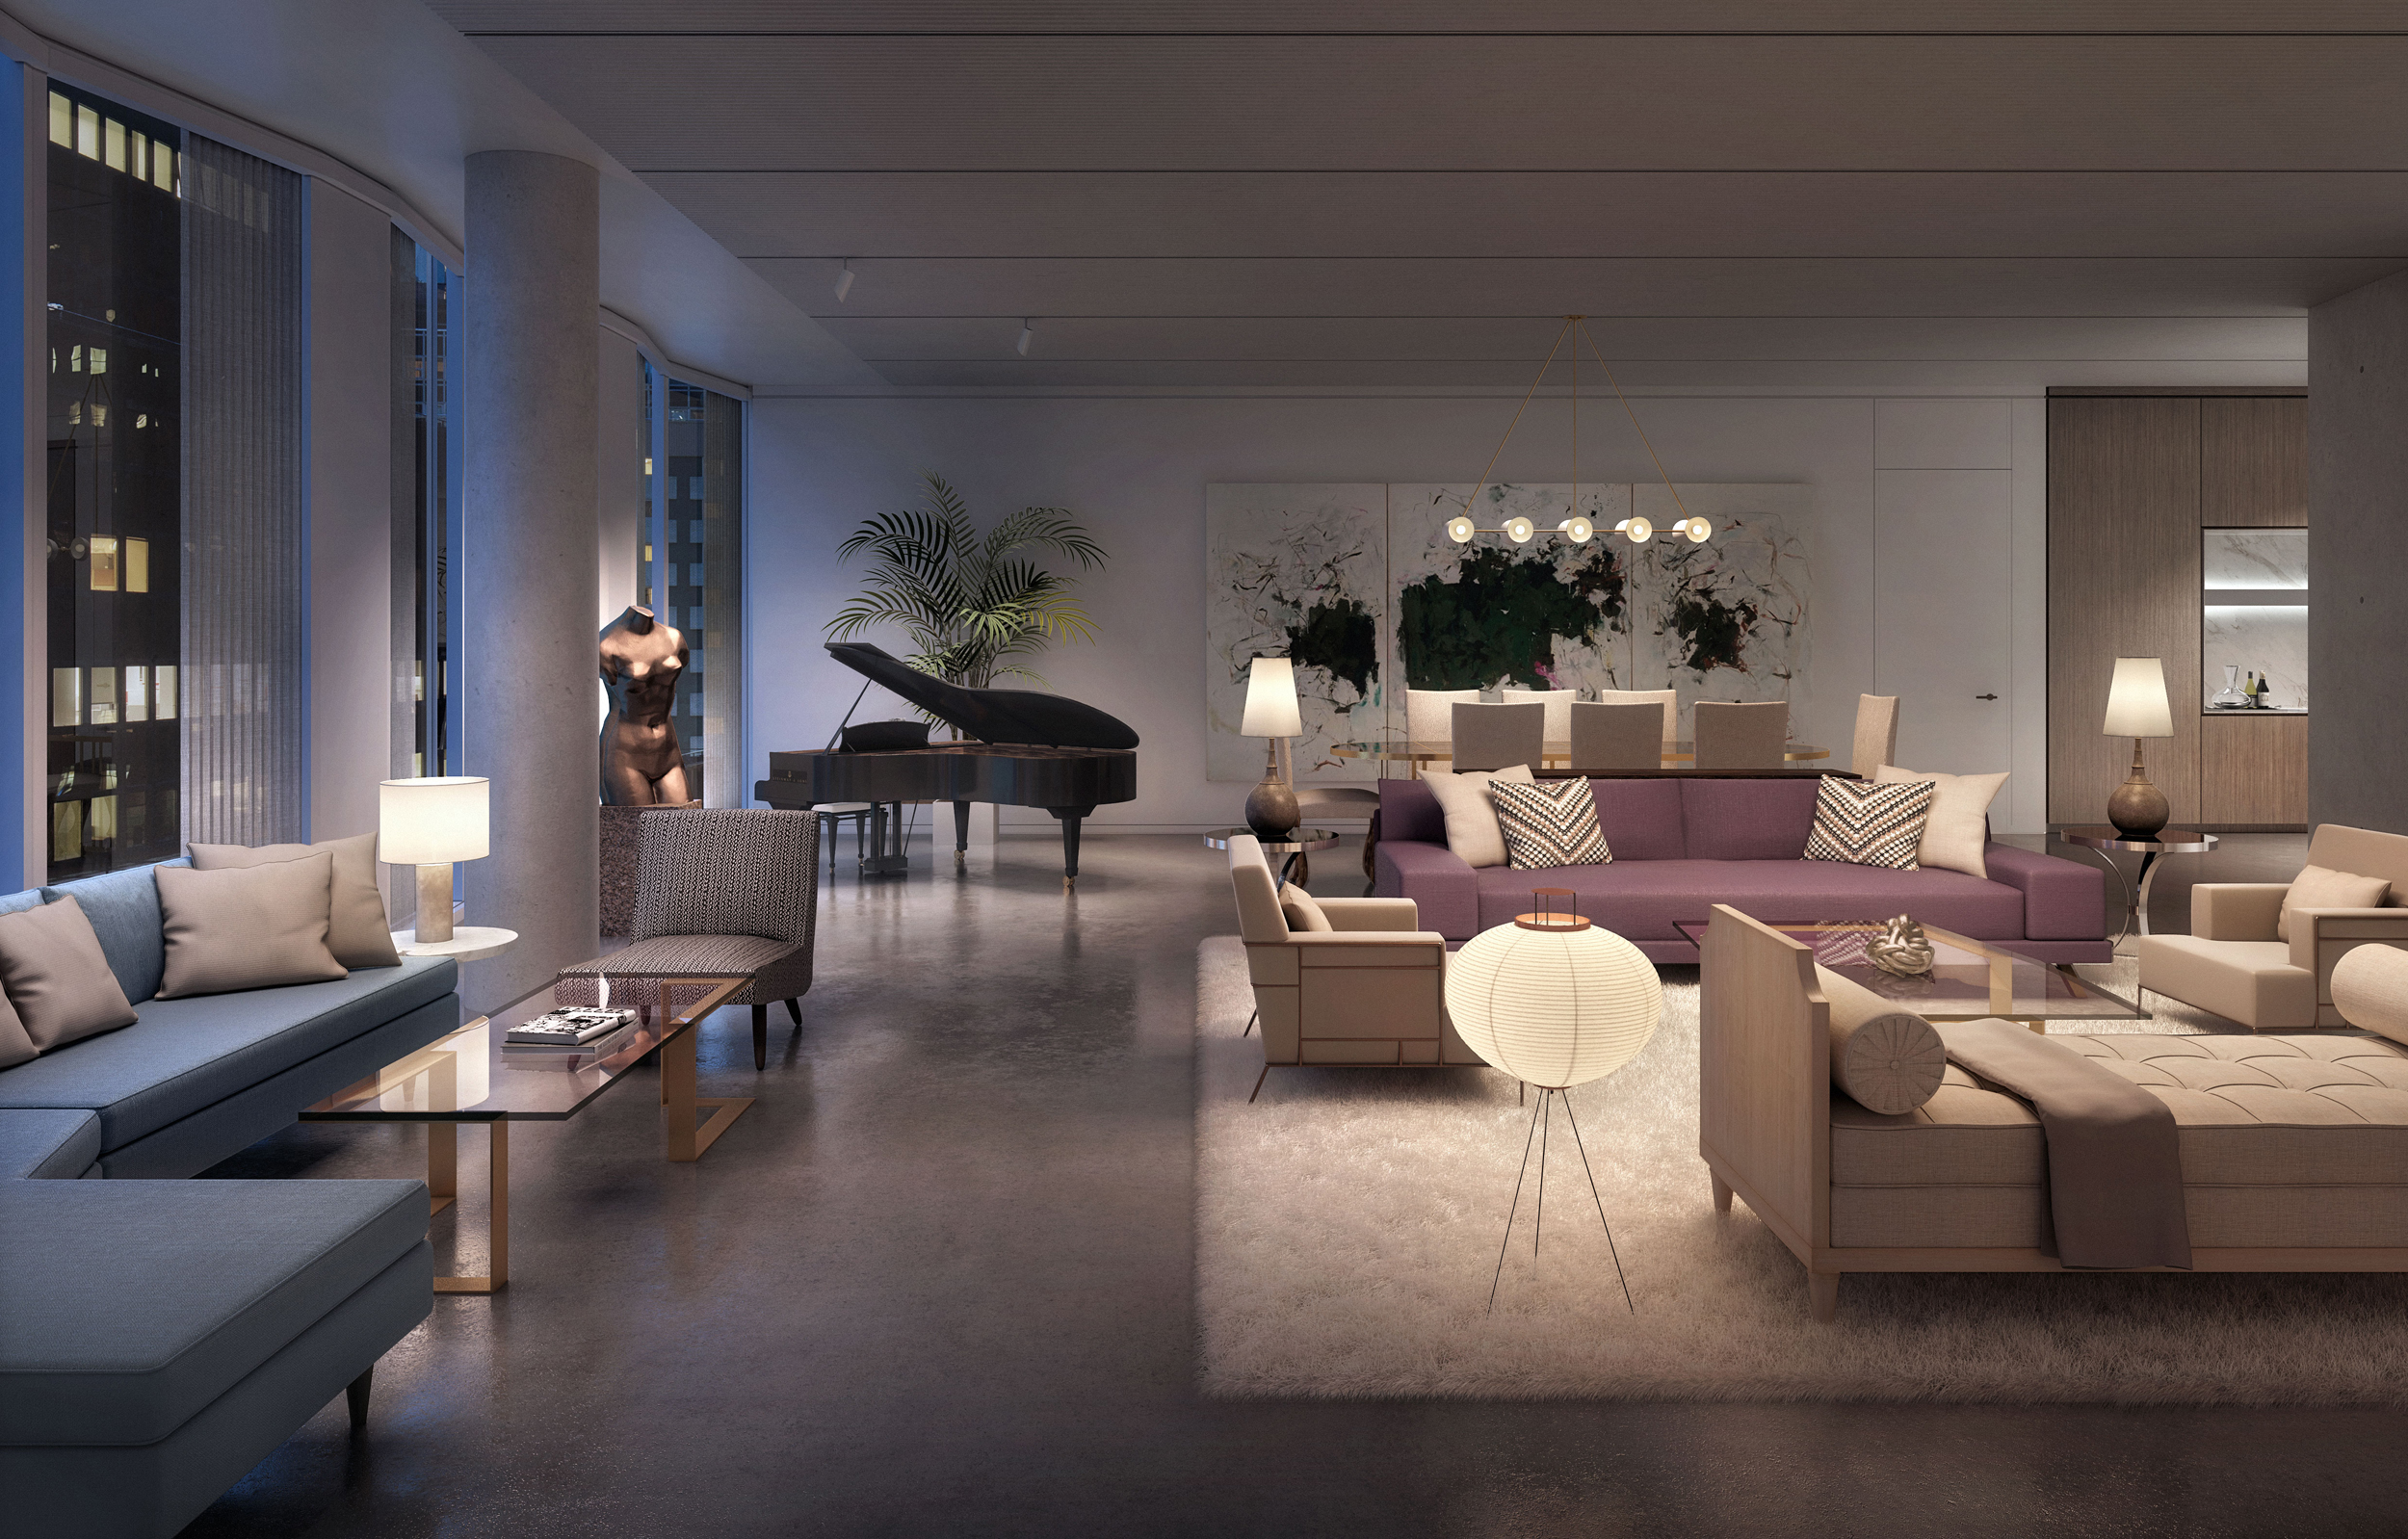 Penthouse In Aby Rosen S Midtown New York Project Seeks